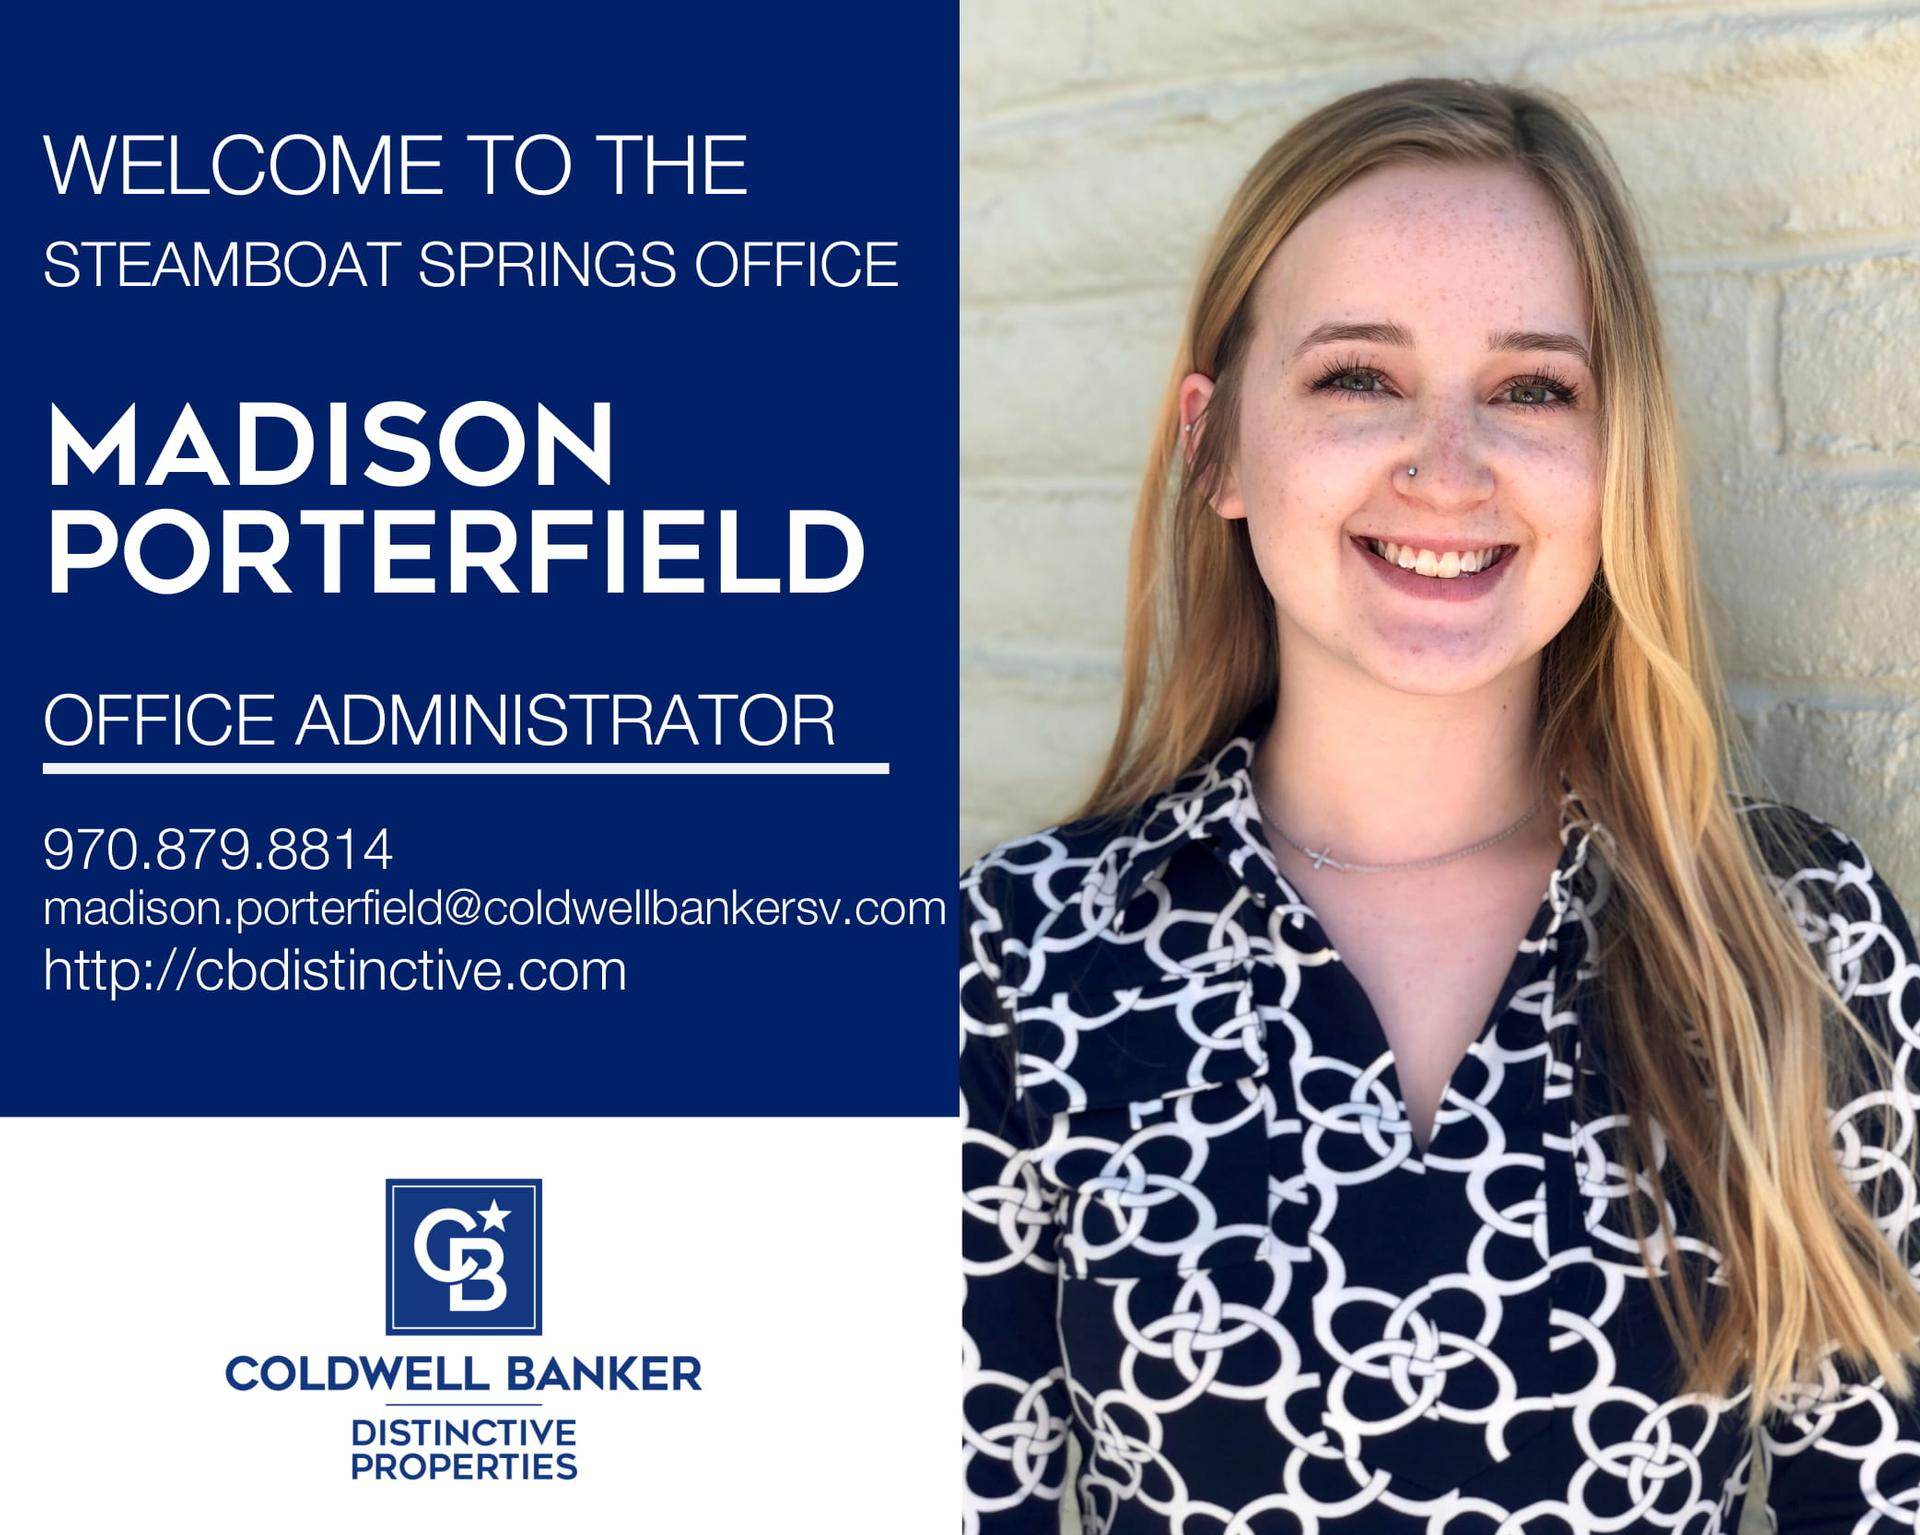 We are excited to have Madison Porterfield join our Coldwell Banker family as our Office Administrator! Main Photo